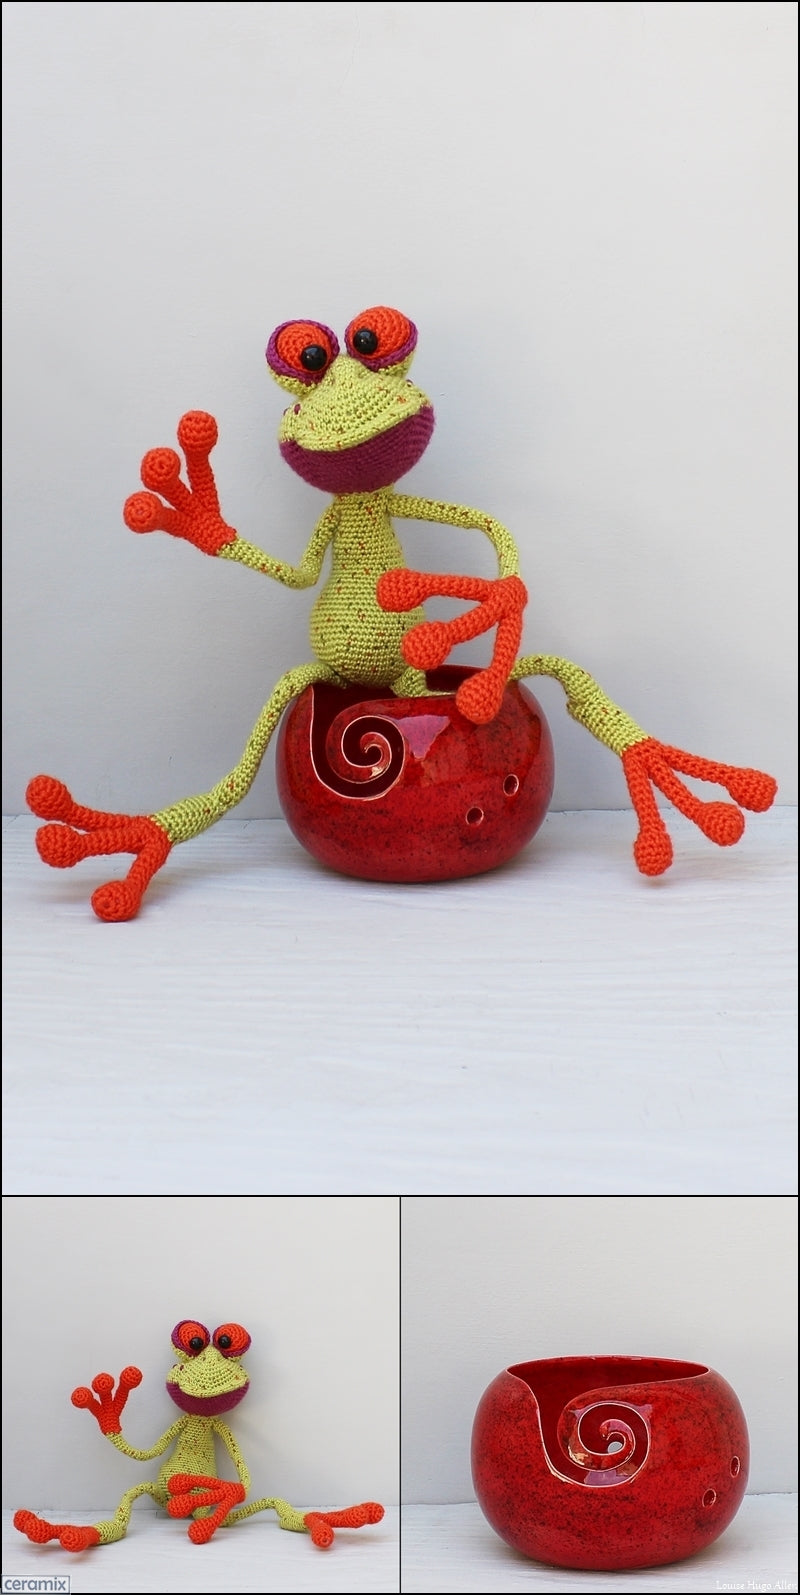 Fred Frog soft toy and yarn bowl handmade in South Africa